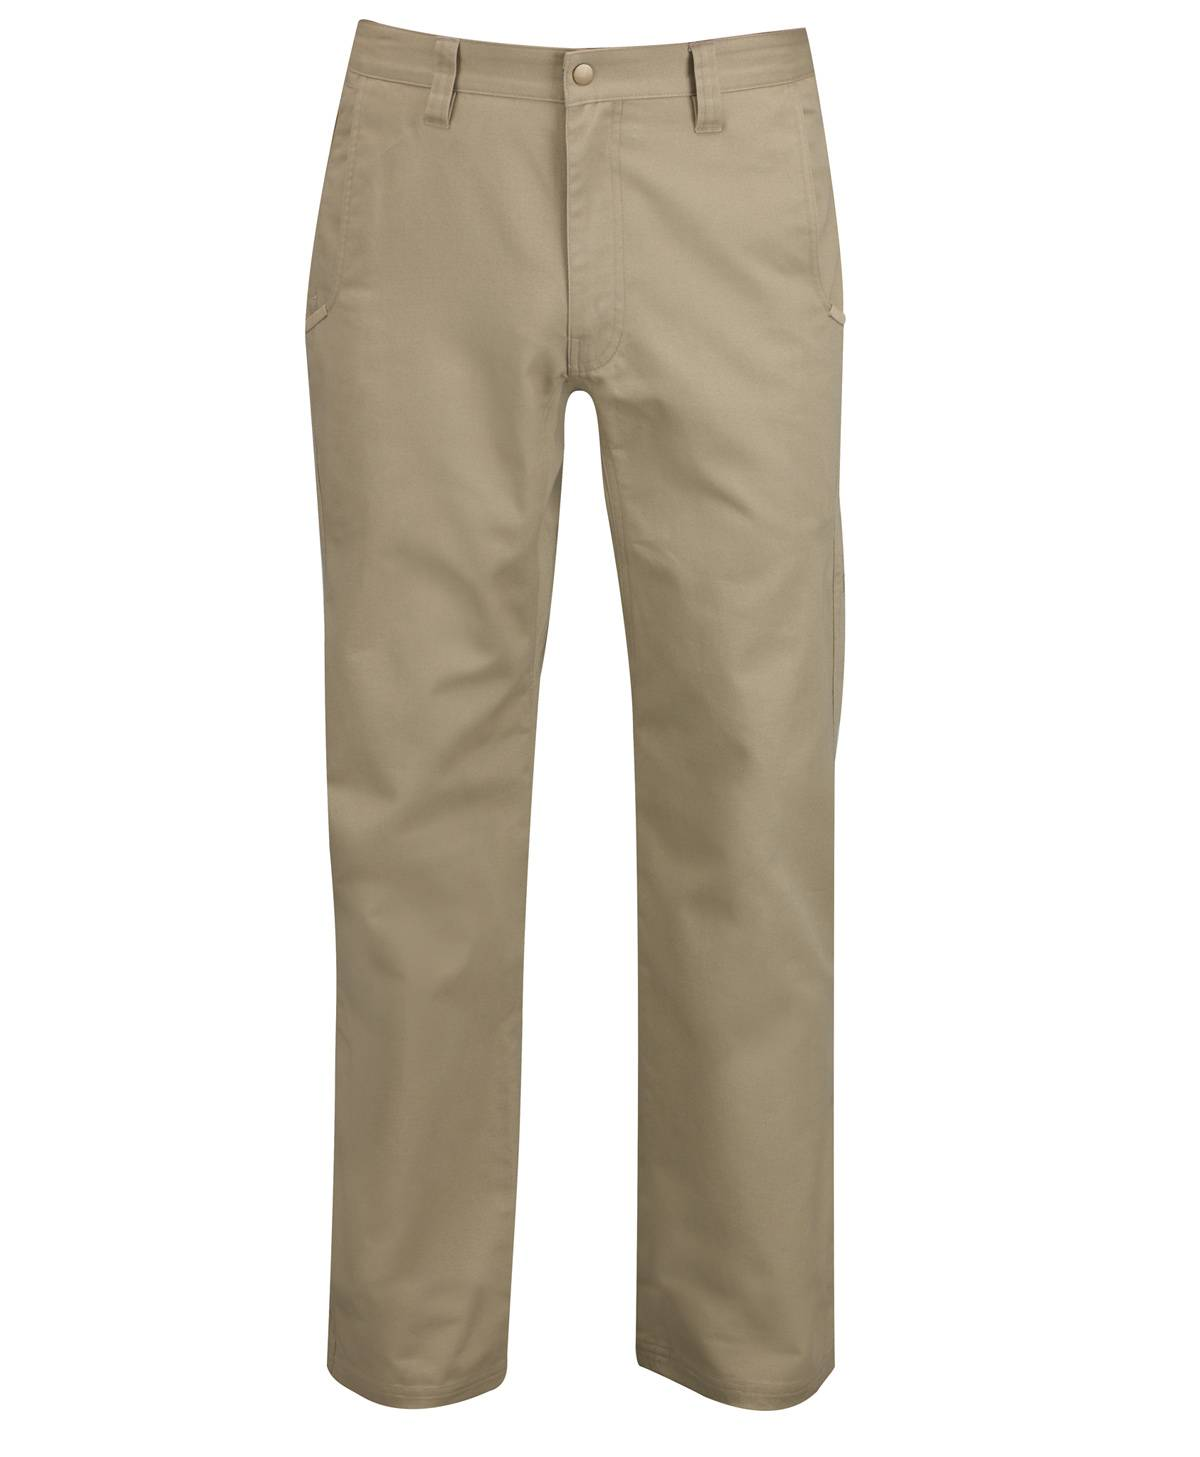 PROPPER District Chino Pant- Khaki (32x36)